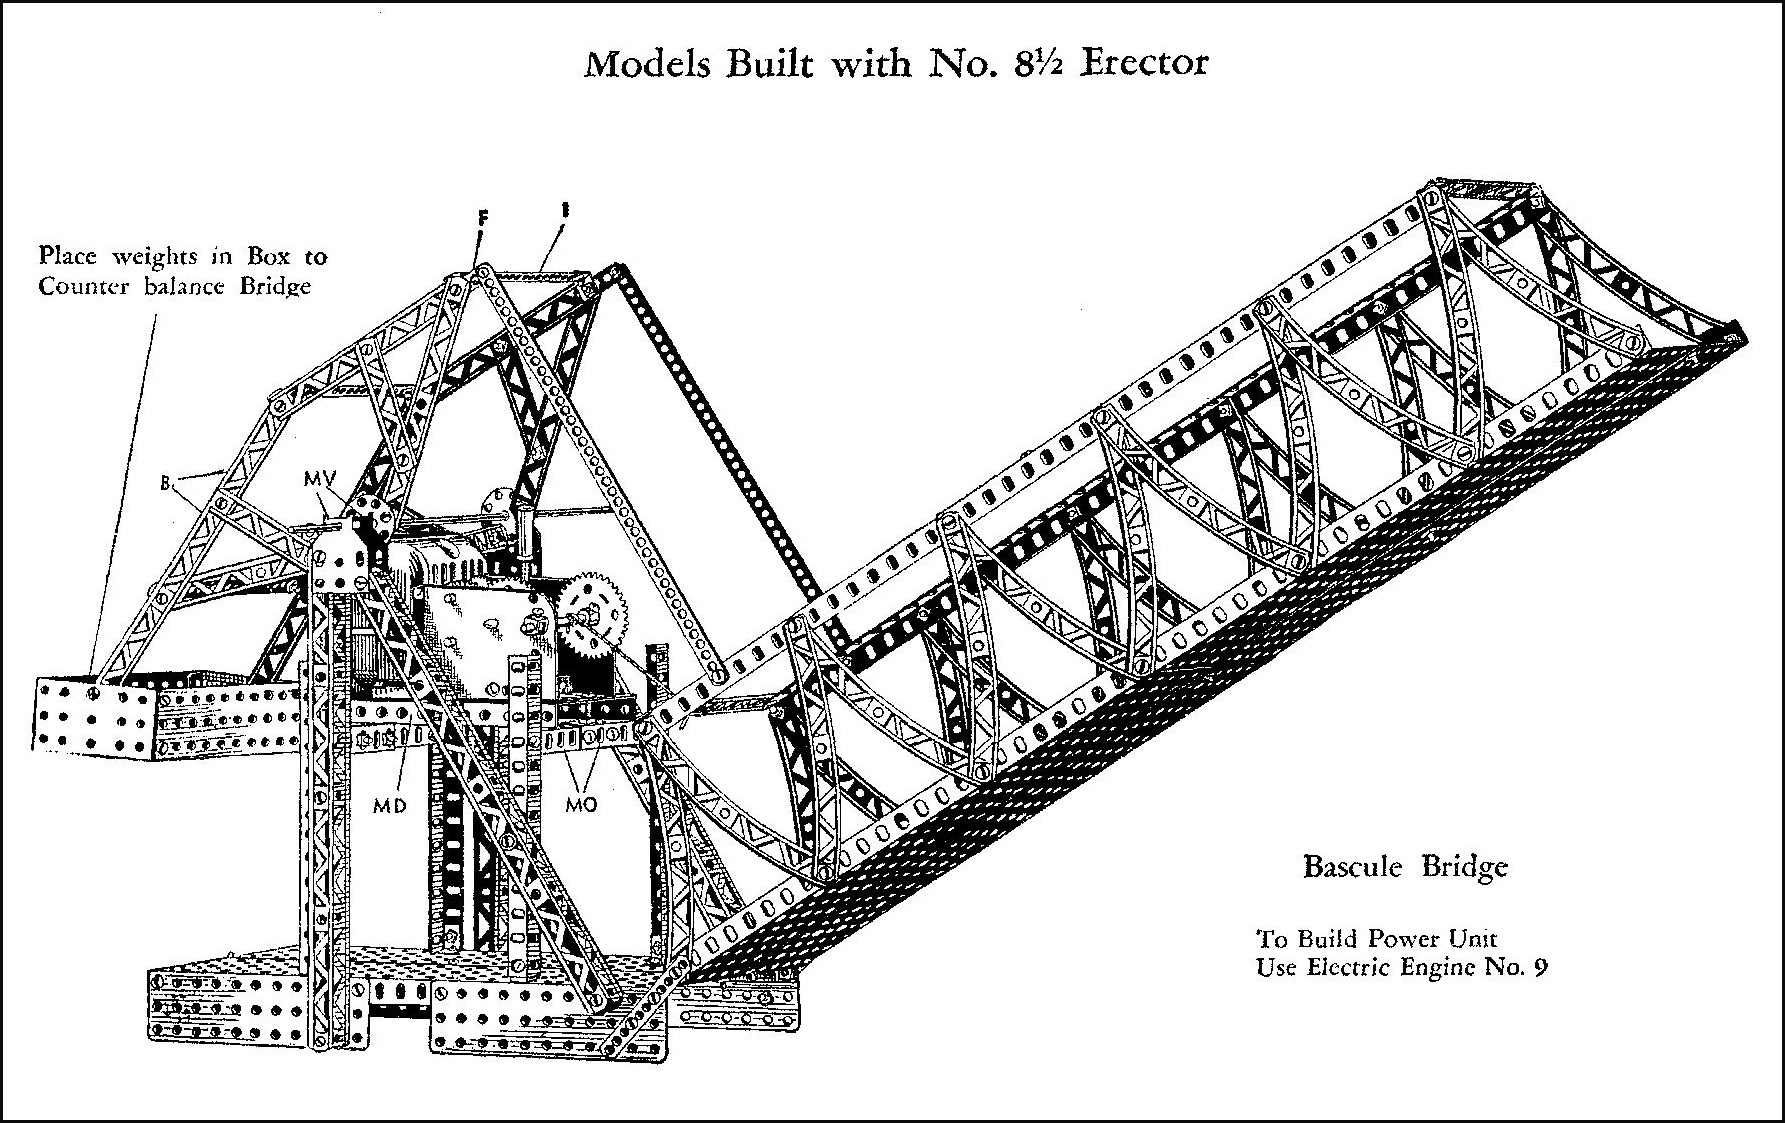 Bascule Bridge Drawing